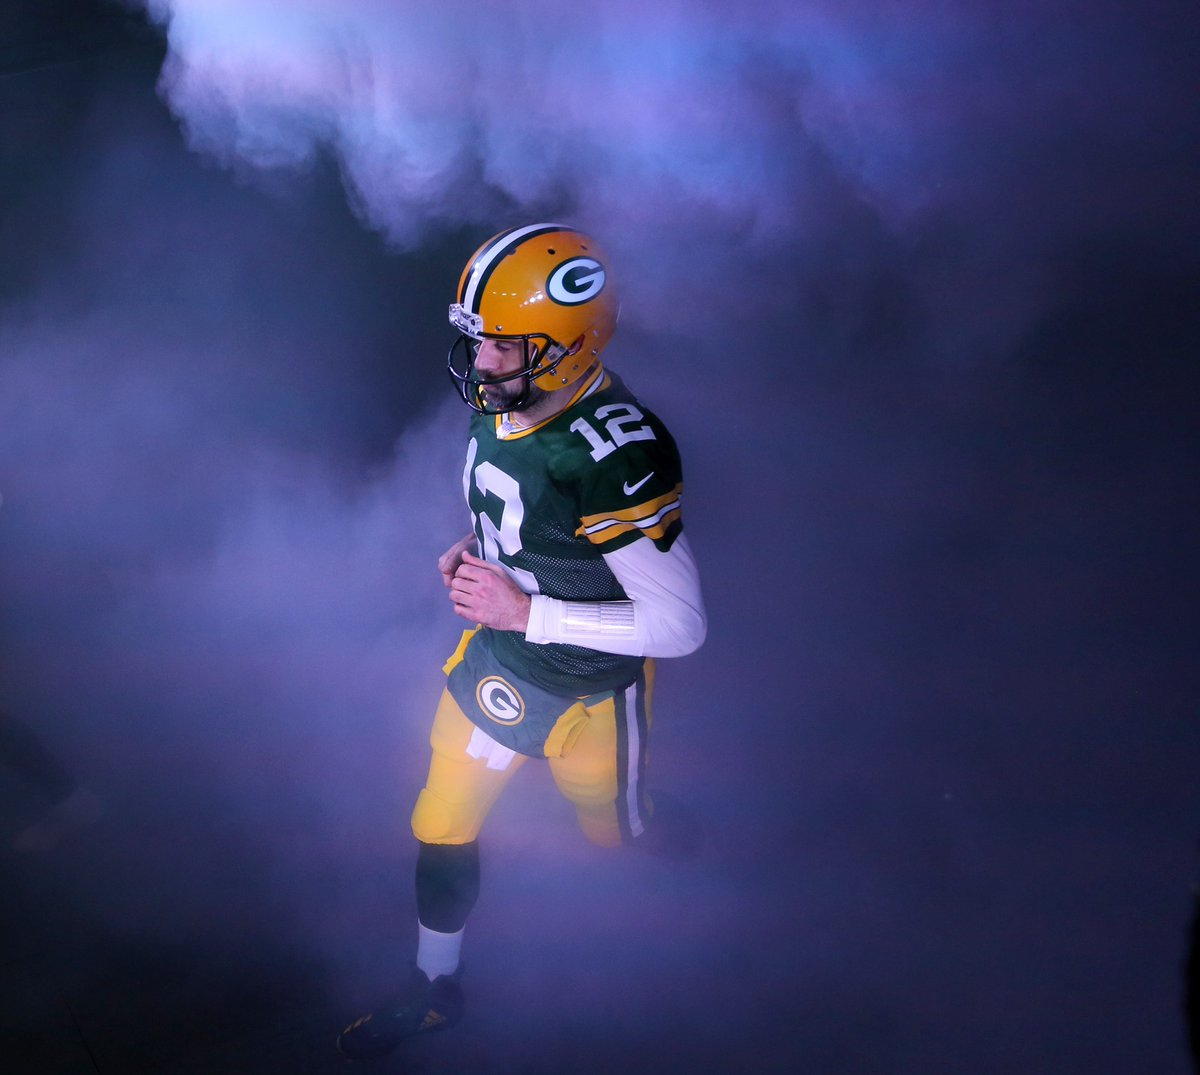 Is this Aaron Rodgers' last best chance at a Super Bowl?  -The @RamieIsTweeting and @TimAllenRants Show  CALL: 414-799-1250 Listen Live: 1250 AM  The FREE @Radiodotcom App!